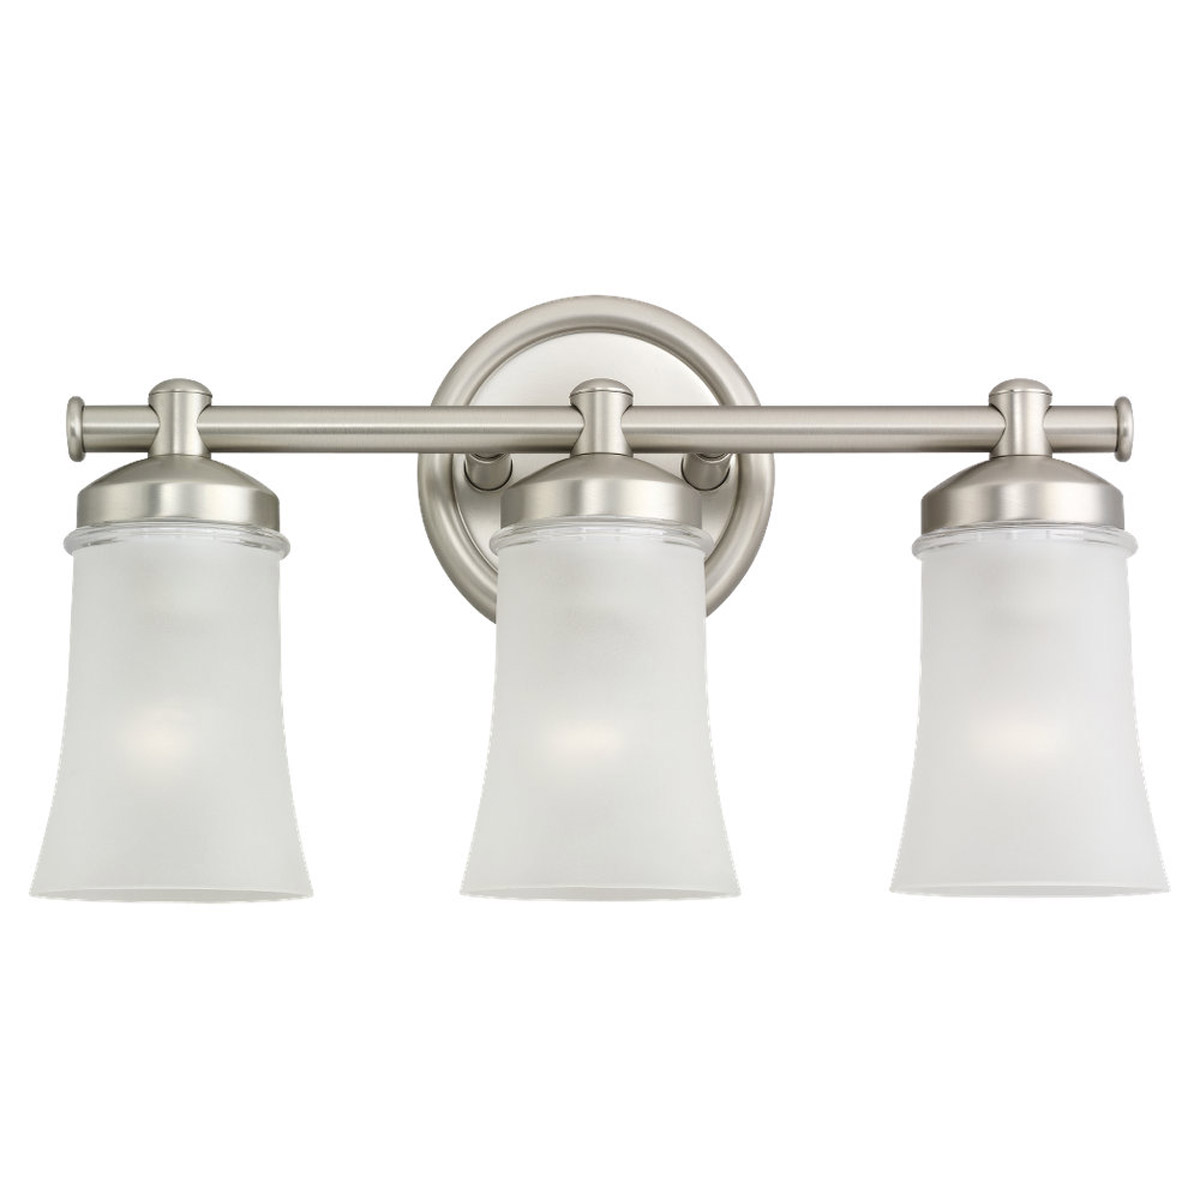 Sea Gull Lighting Newport 3 Light Bath Vanity in Antique Brushed Nickel 44484BLE-965